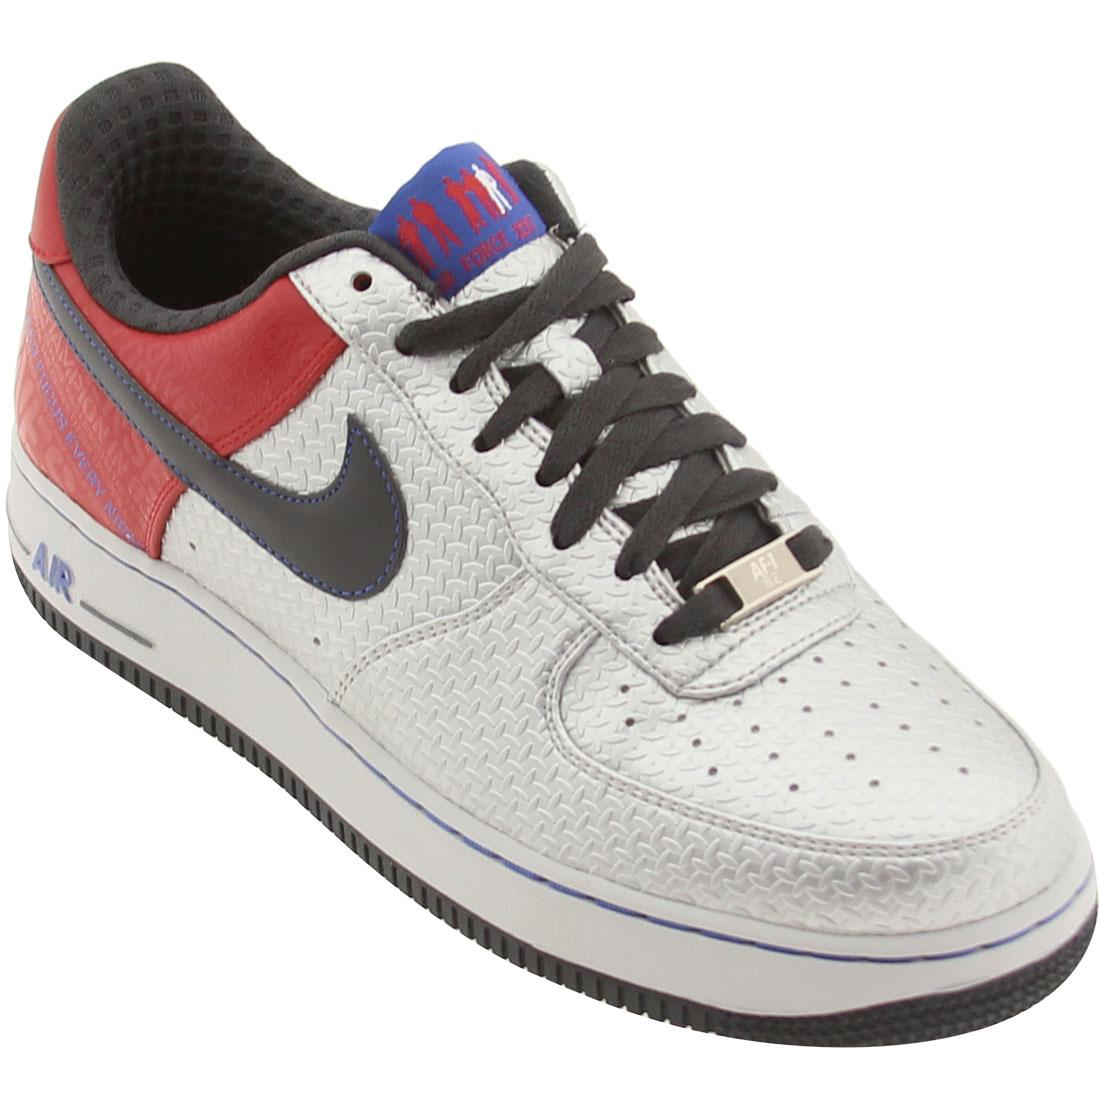 Nike Men Air Force 1 Low Premium '07 (Jones) Silver / Red